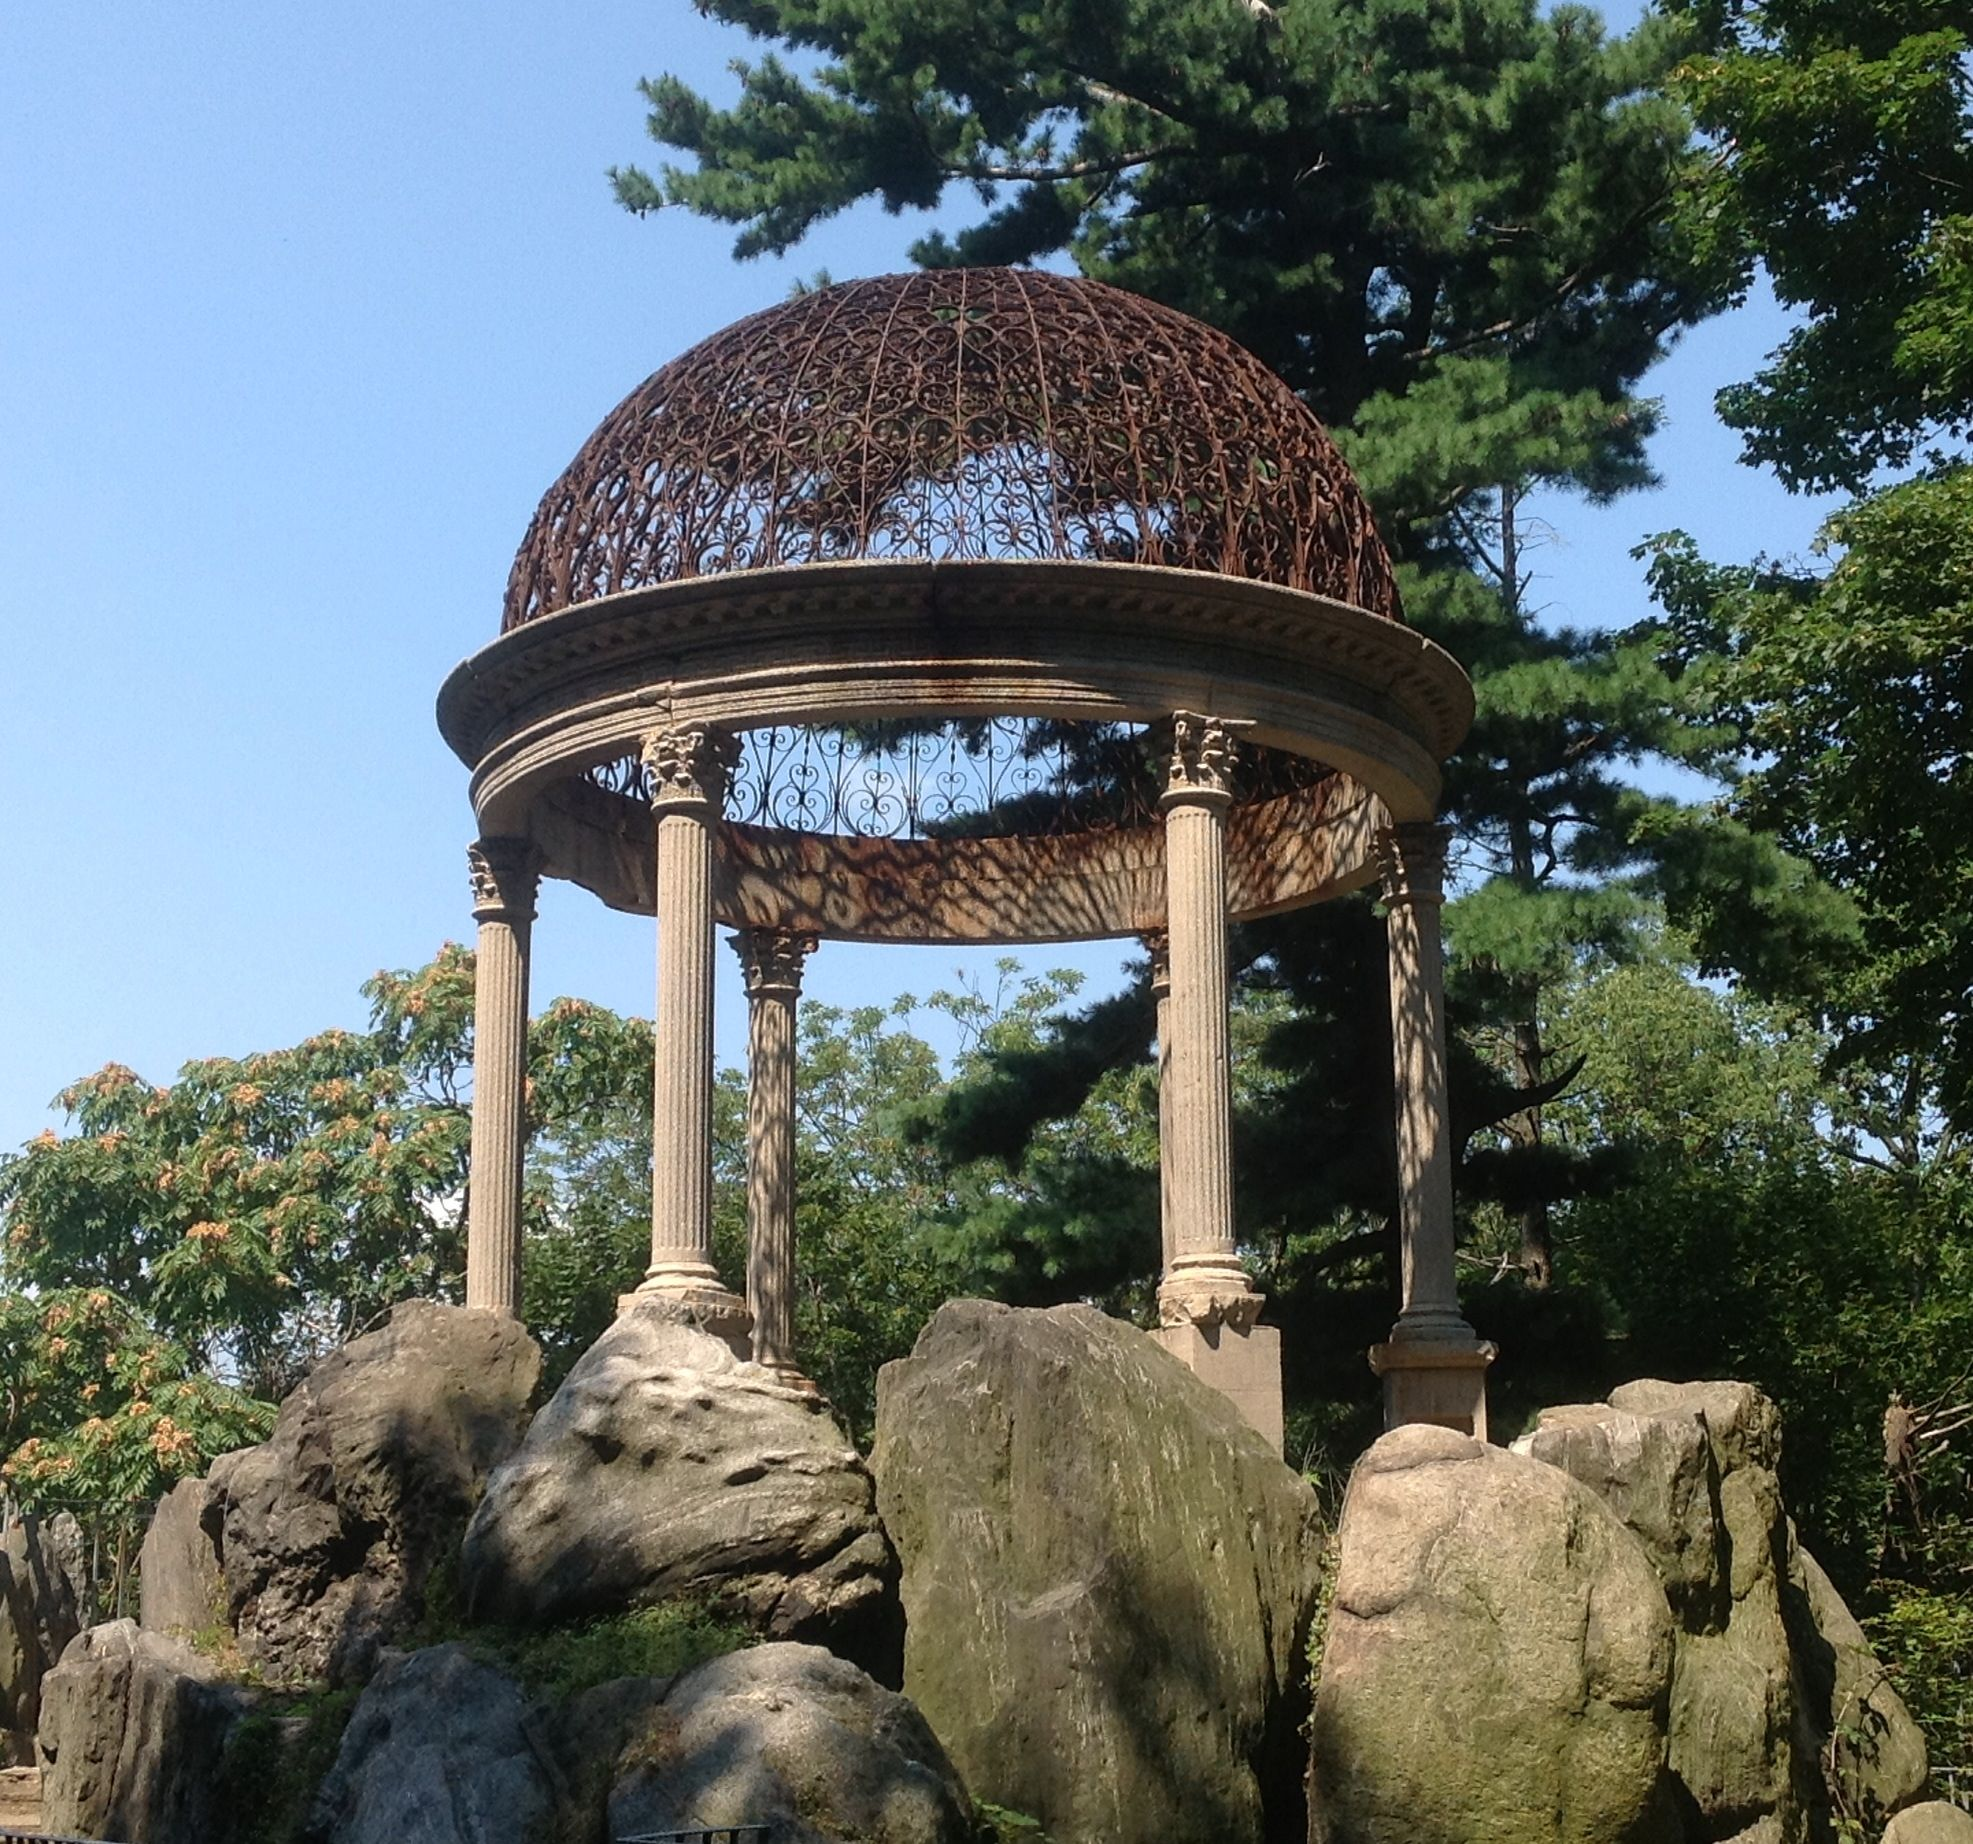 I Took This Picture Recently At Untermyer Park, Yonkers